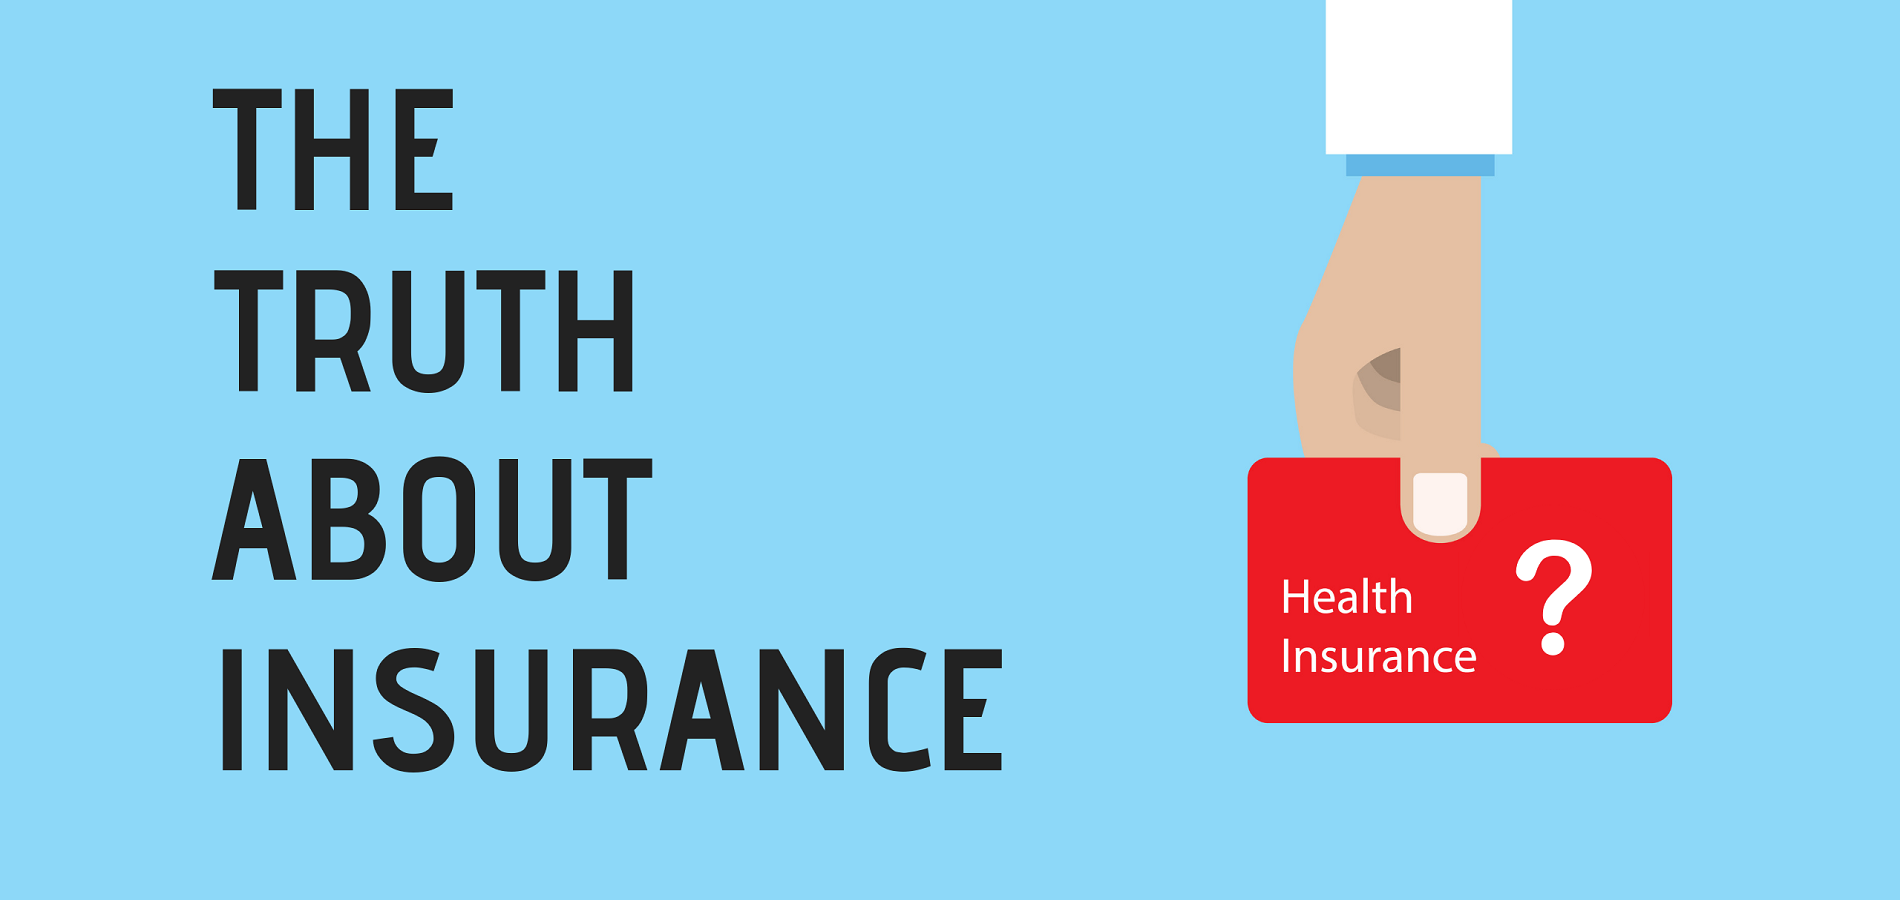 The truth about health insurance for small business in Canada by Alden-3